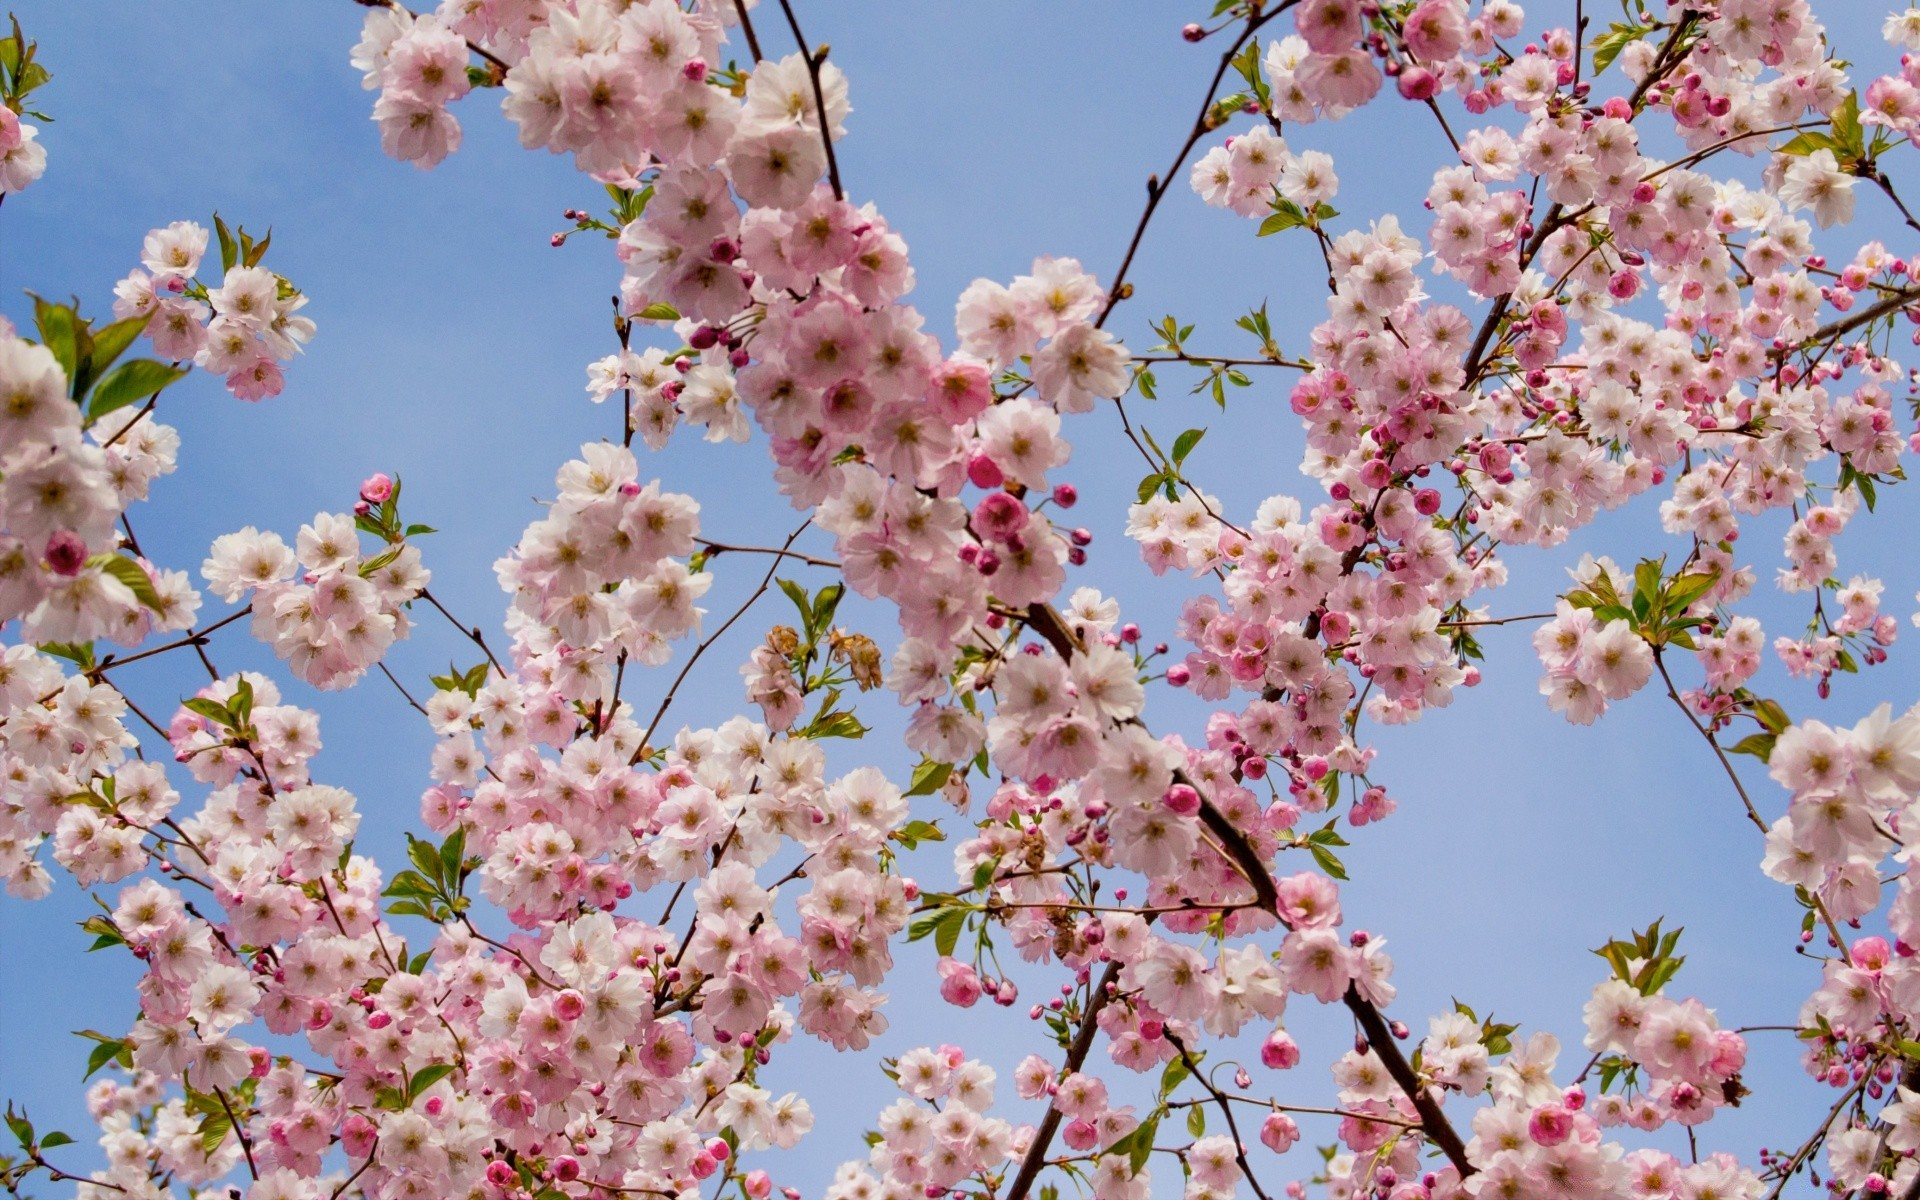 flowers flower cherry branch tree flora season blooming nature petal springtime floral bud garden close-up plum color growth bright apple